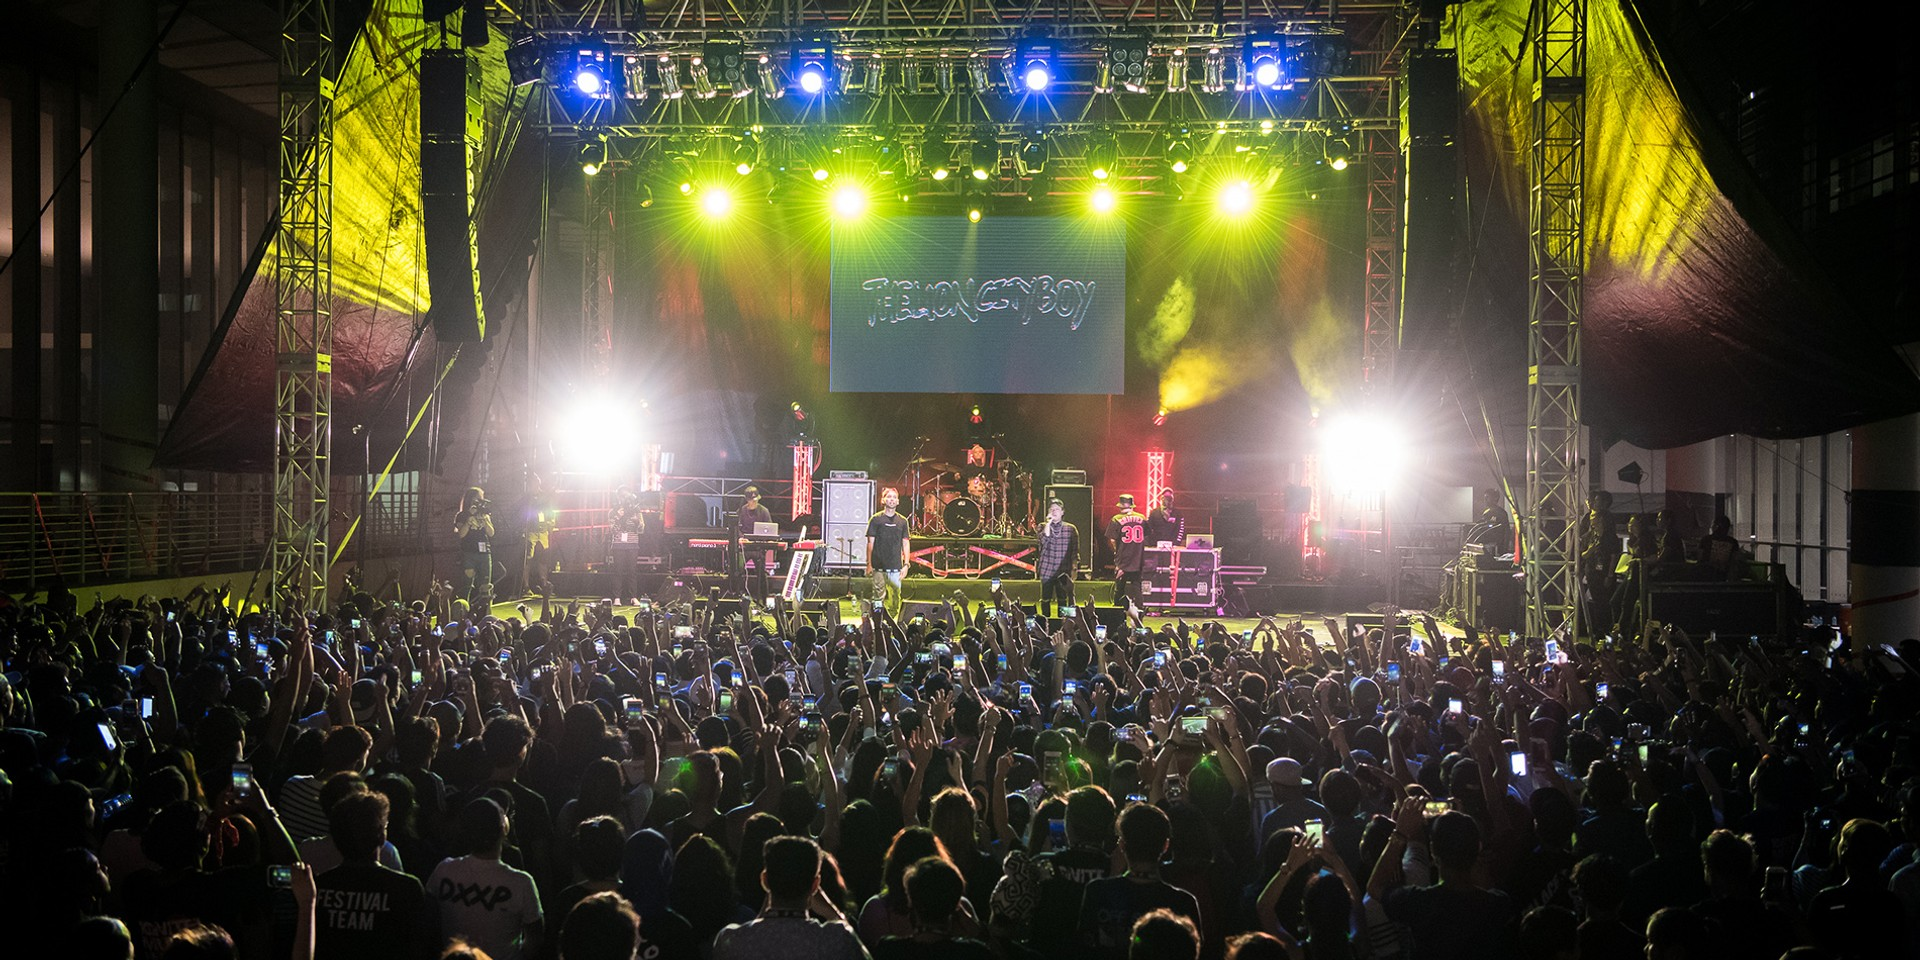 IGNITE! Music Festival celebrates 10th anniversary with its liveliest crowds yet — photo gallery